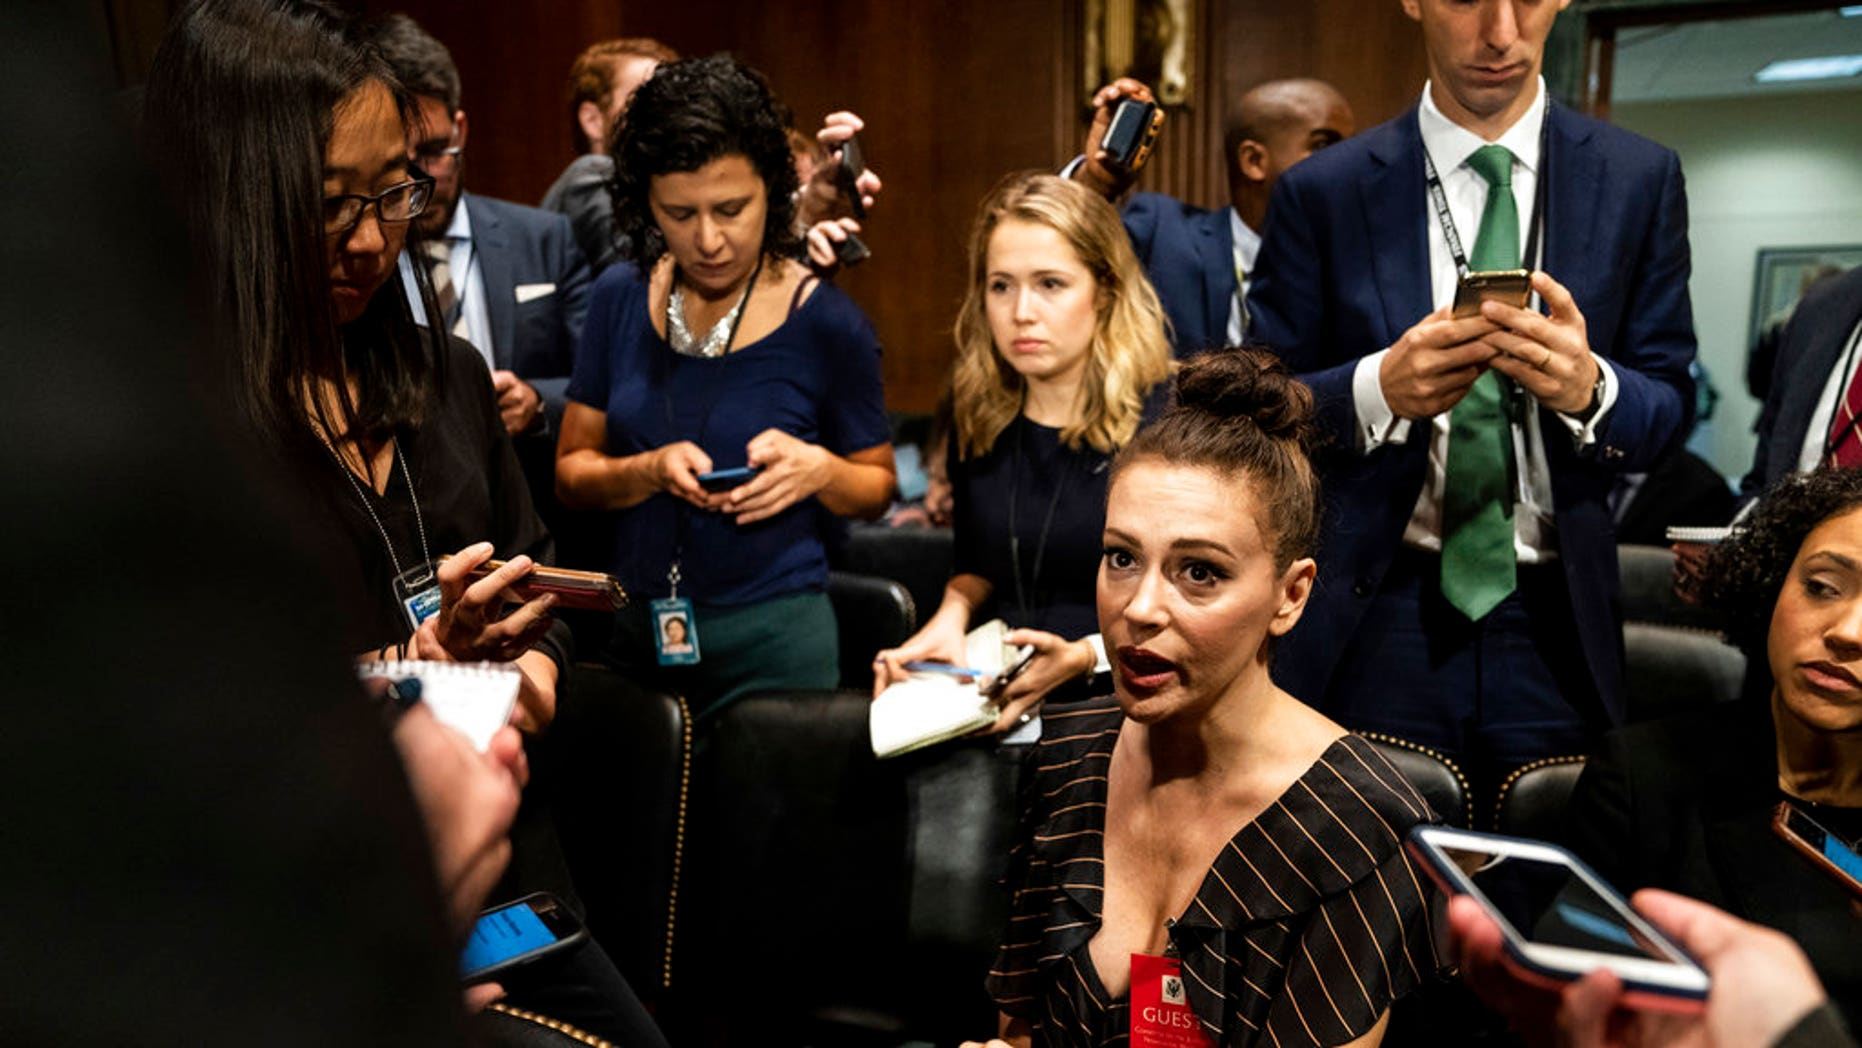 Actress Alyssa Milano is seen before a Senate Judiciary Committee hearing, Thursday, Sept. 27, 2018 on Capitol Hill in Washington with Christine Blasey Ford and Supreme Court nominee Brett Kavanaugh. (Erin Schaff/The New York Times via AP, Pool)